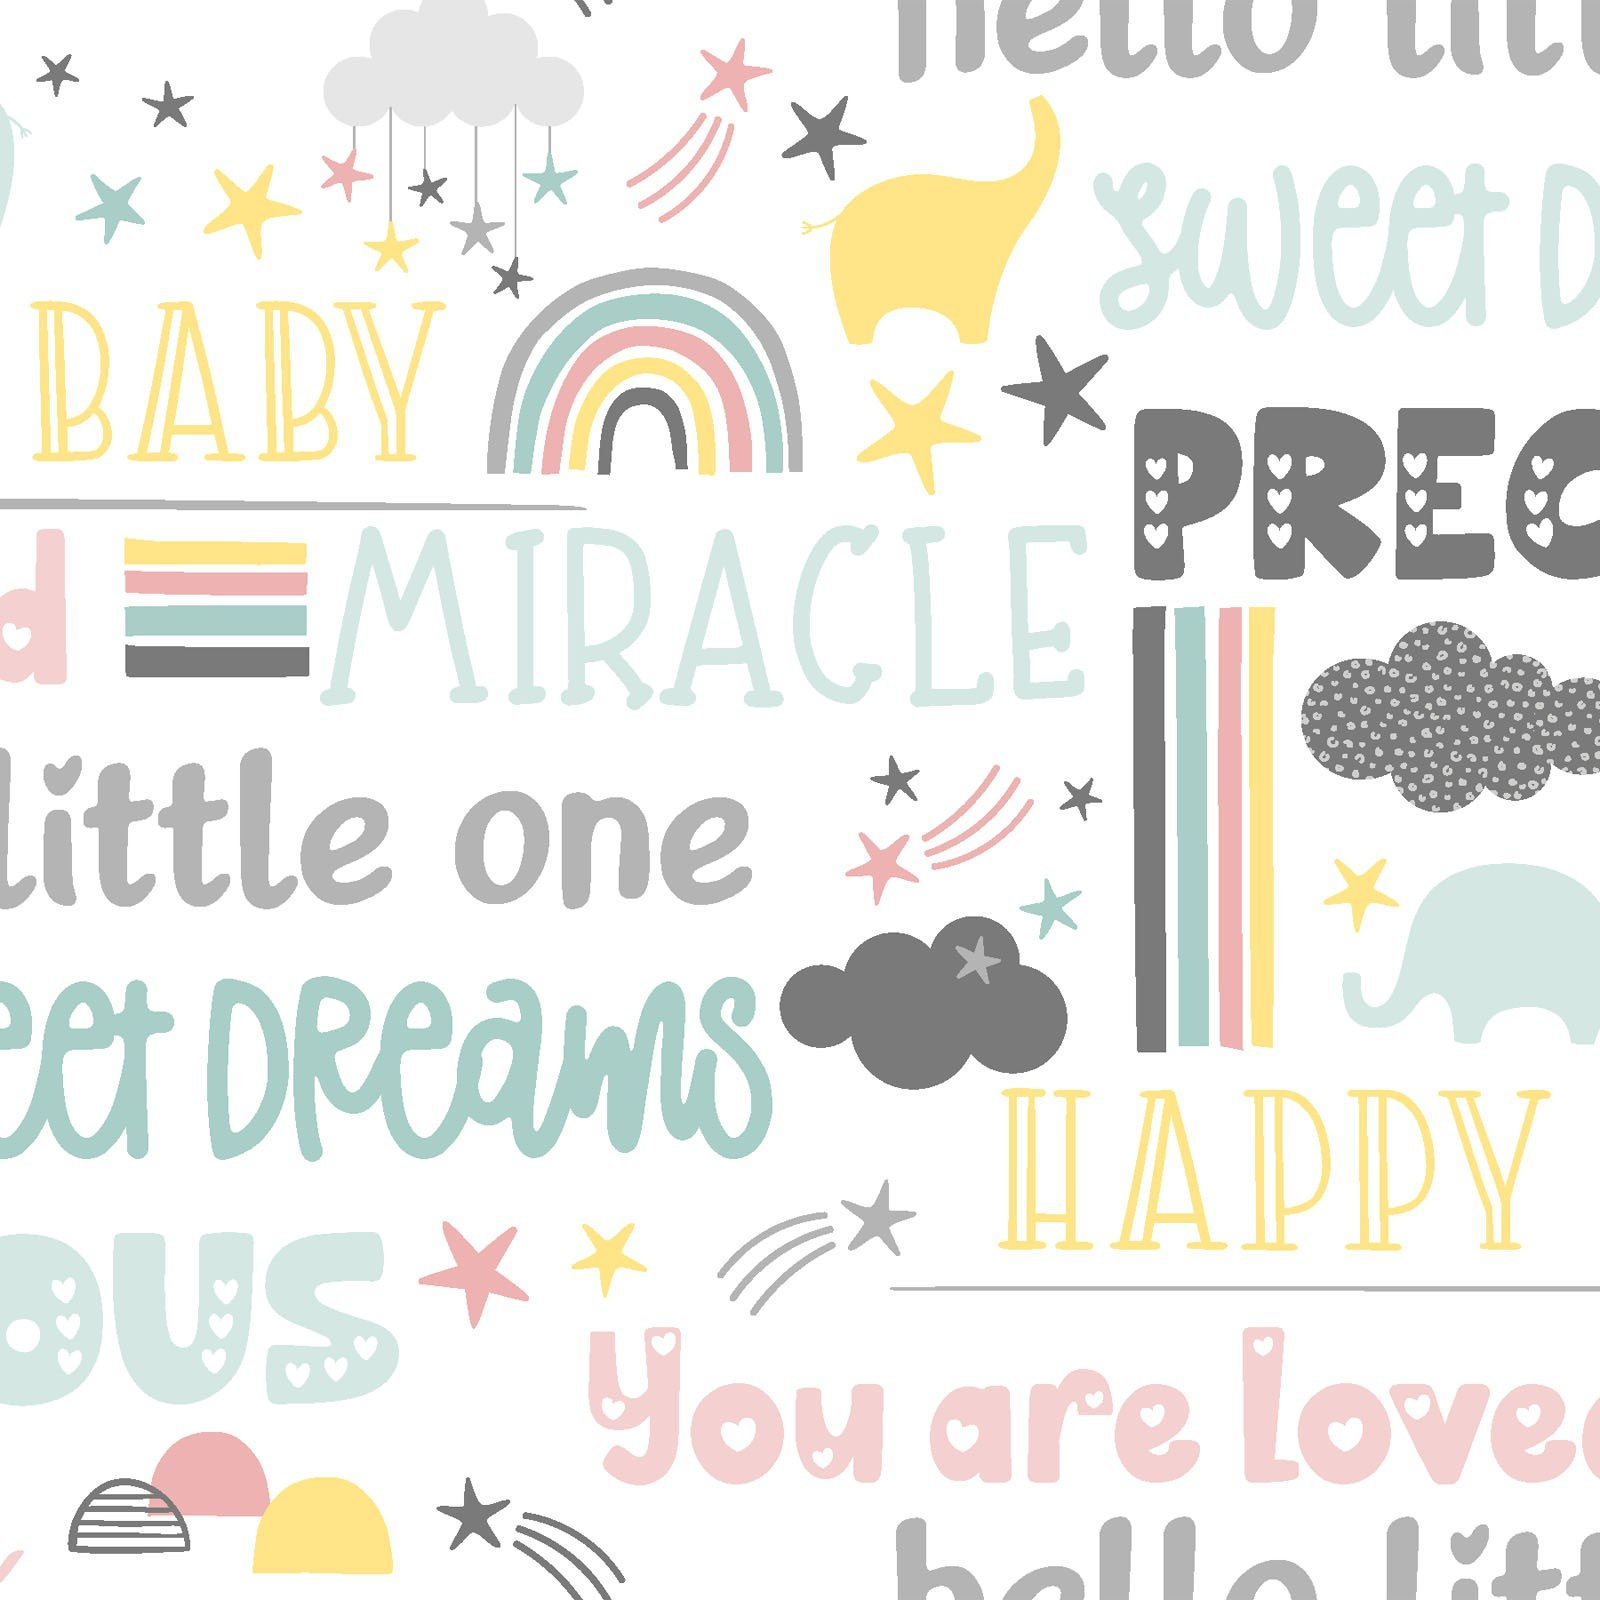 3 Wishes Small & Mighty FLANNEL by Angela Nickeas 17159 WHT White Sweet Words $6.99/yd